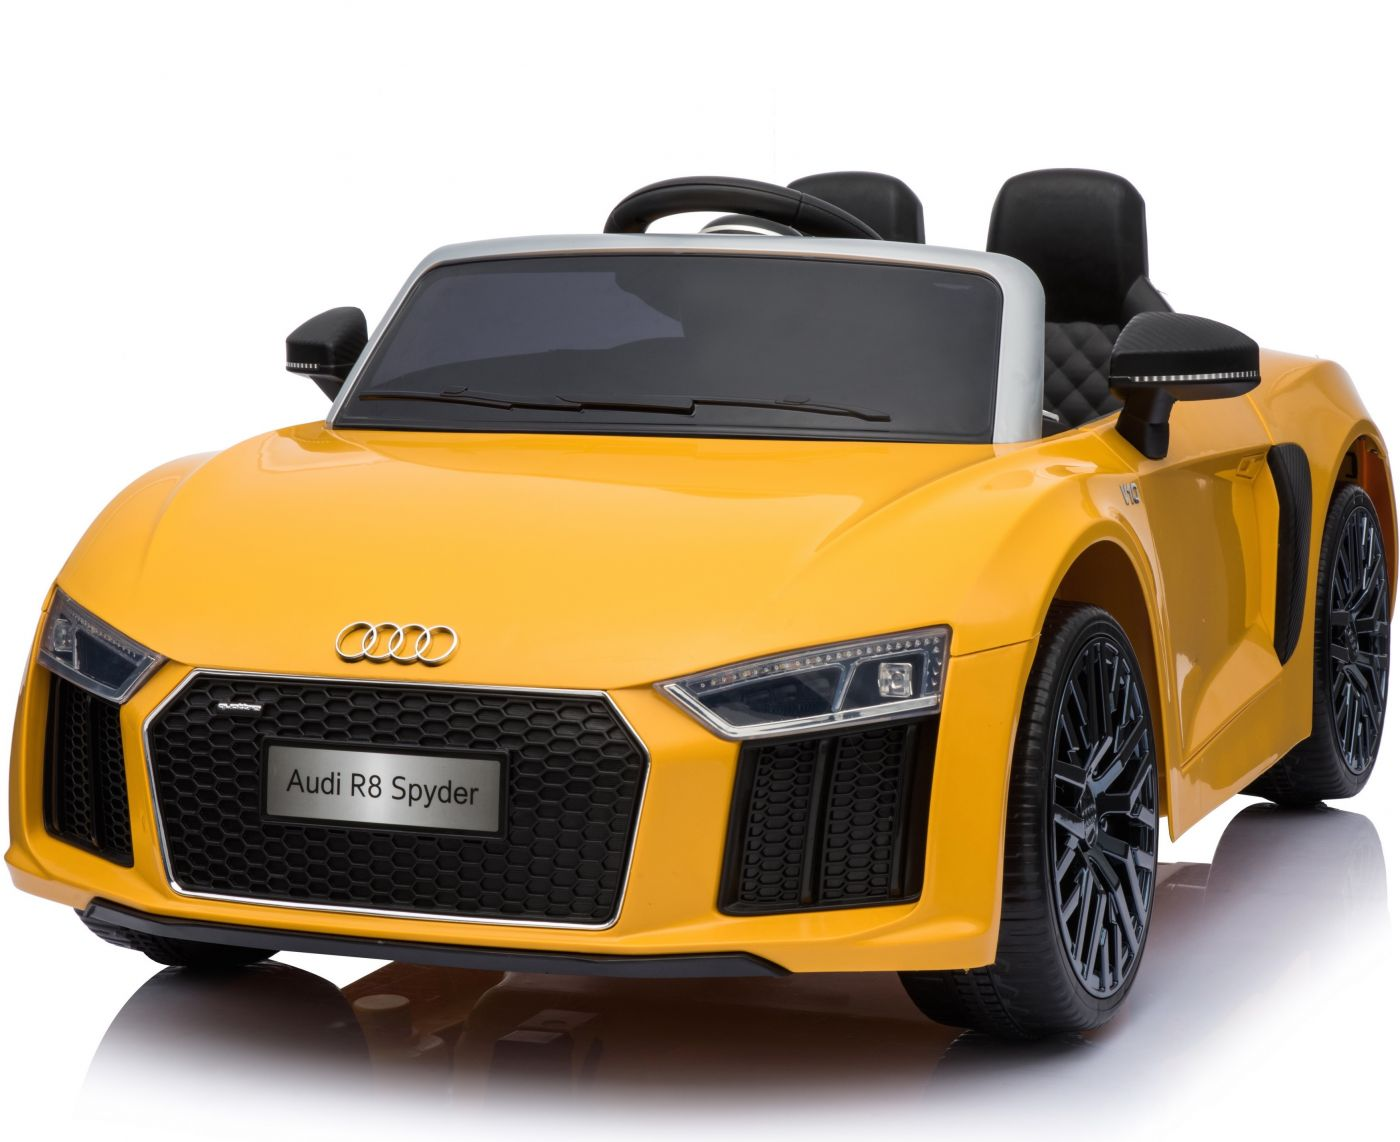 New Shape Licensed Audi R8 Spyder 12v Childrens Electric Ride On Toy Car Yellow